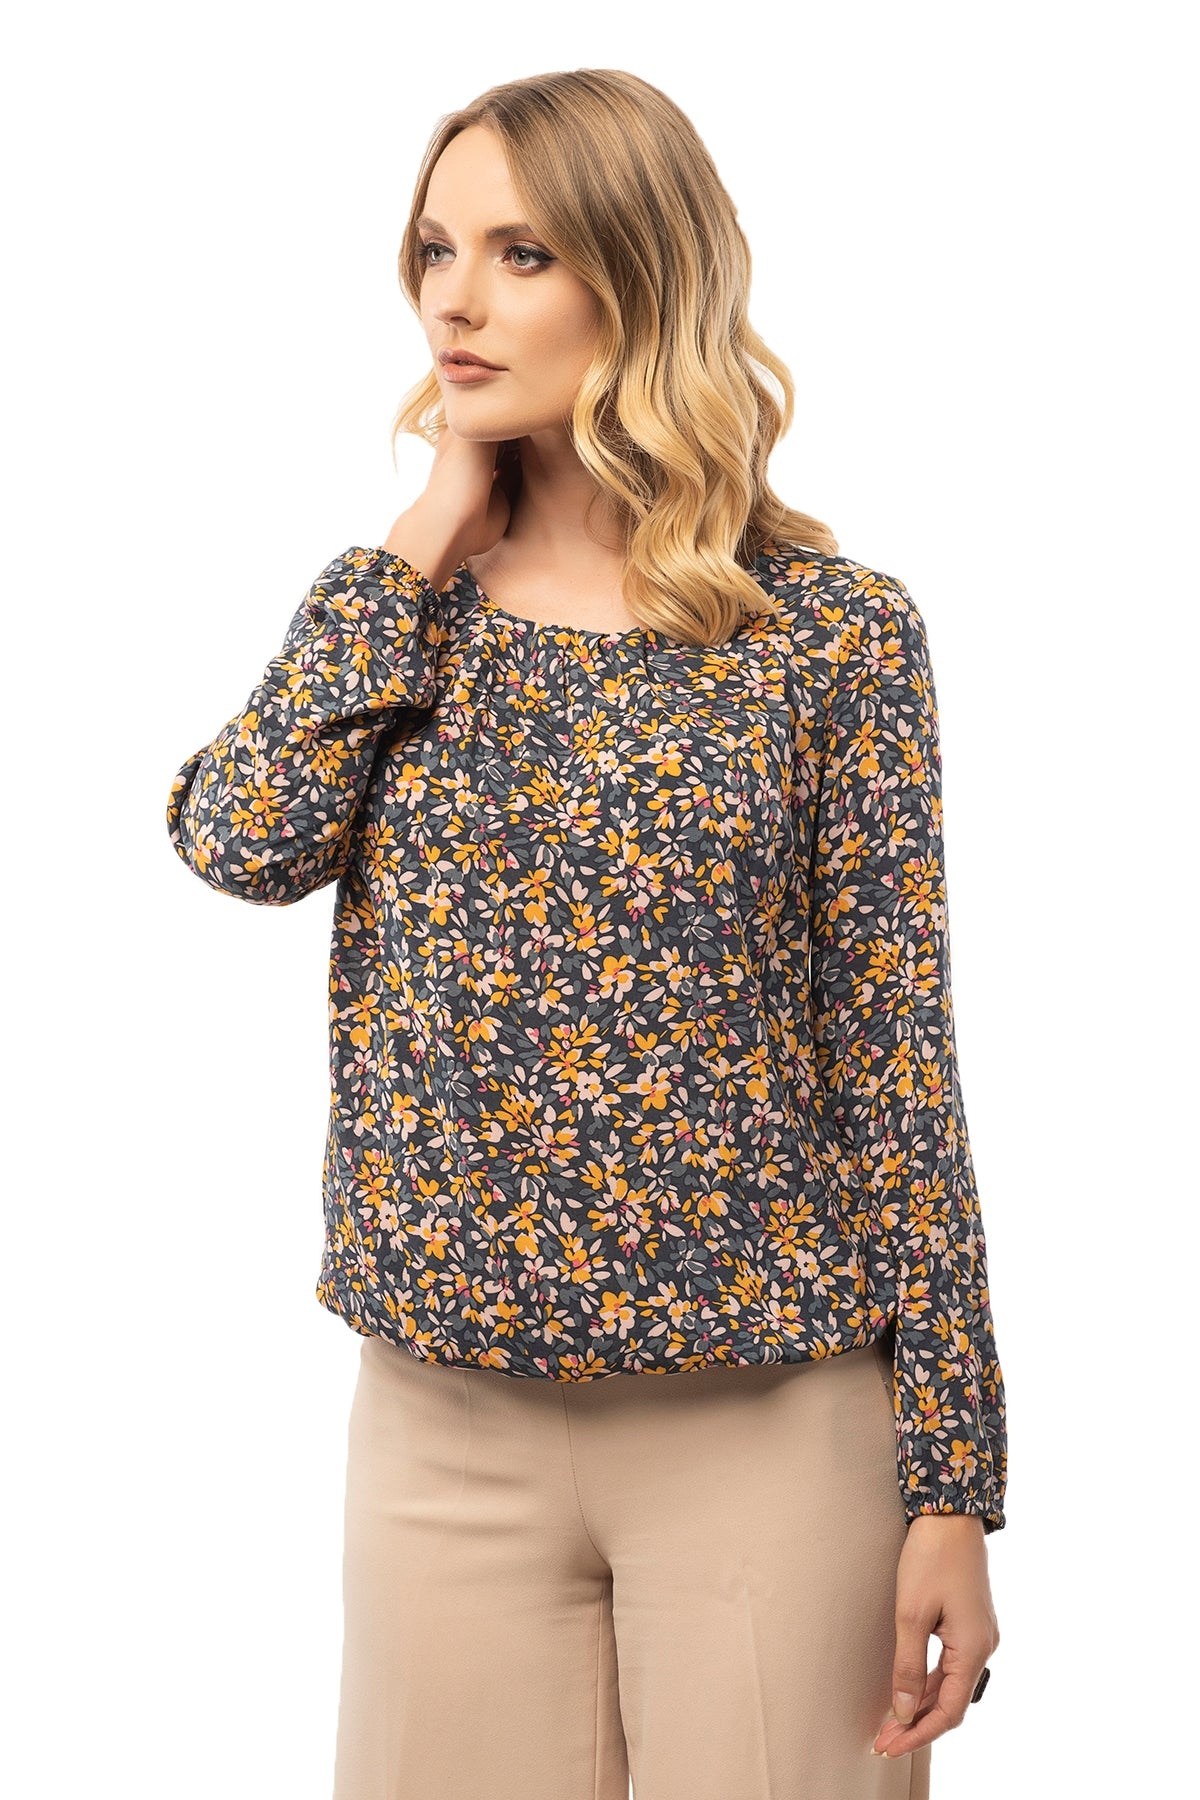 Gathered Bottom & Neck Floral Blouse - Long Sleeve